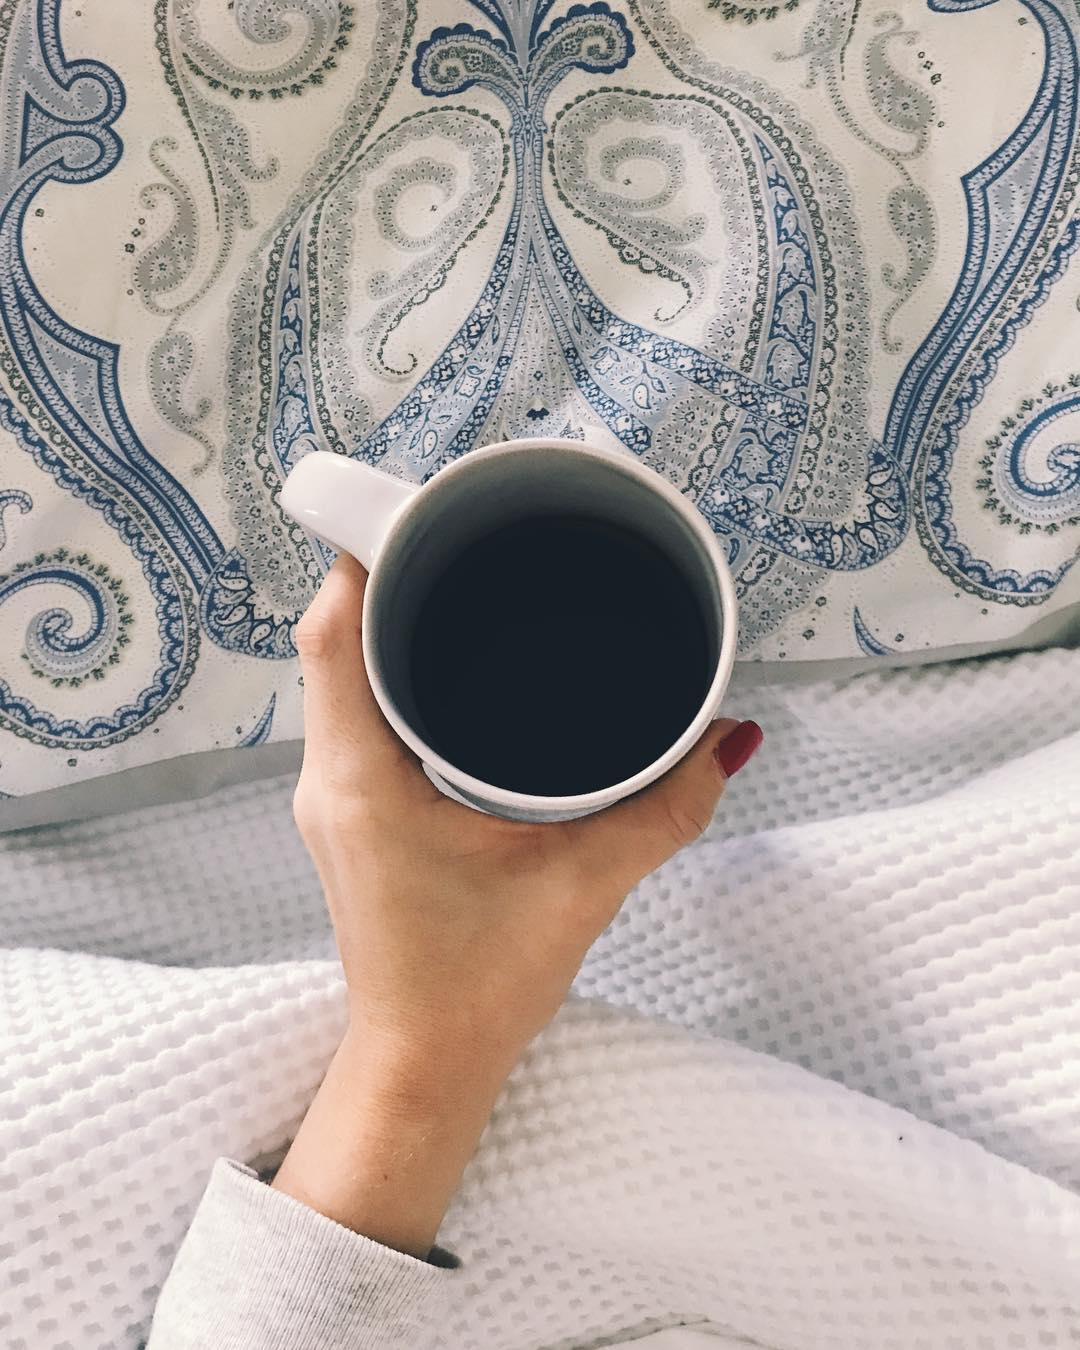 Coffee is better in bed